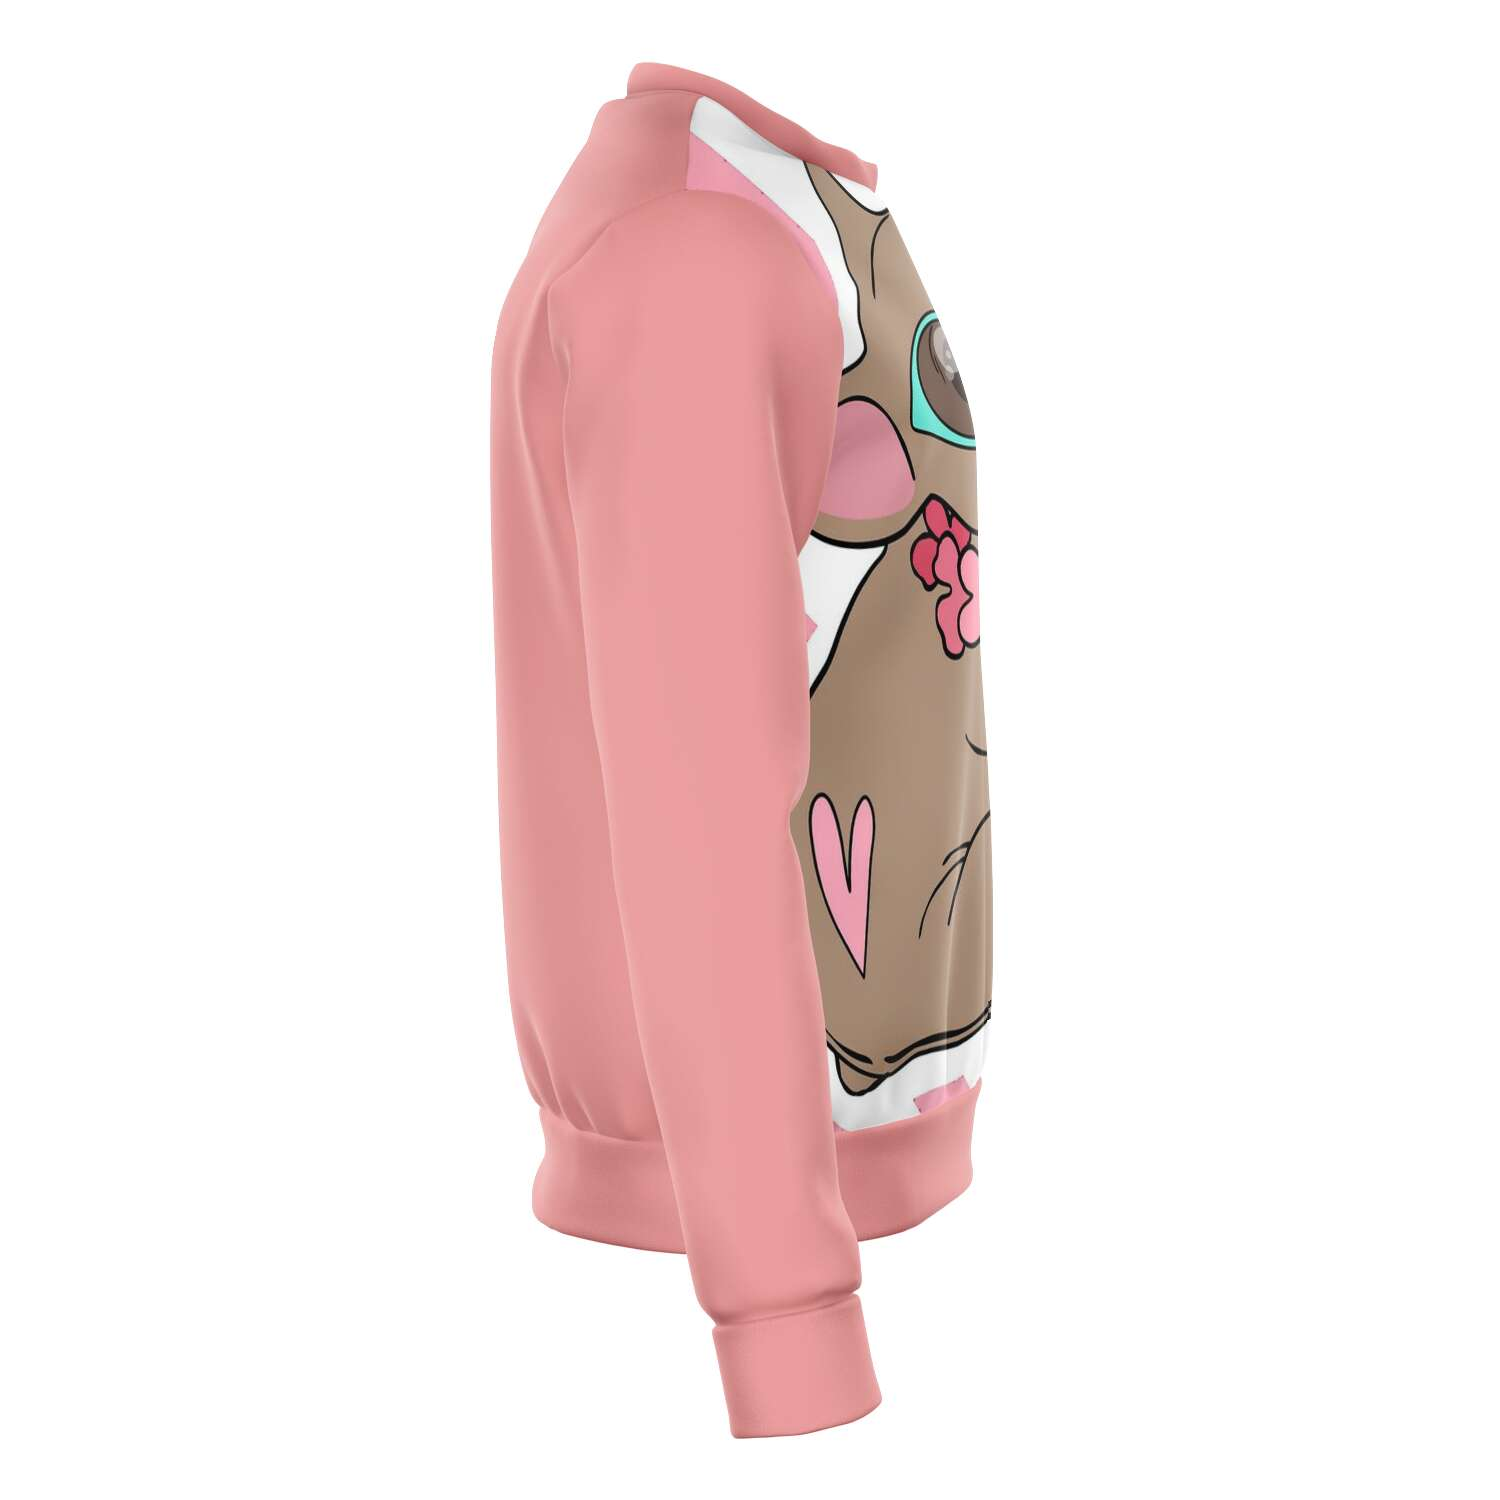 Lucie - French Bulldog Sweater - Frenchie Bulldog Shop